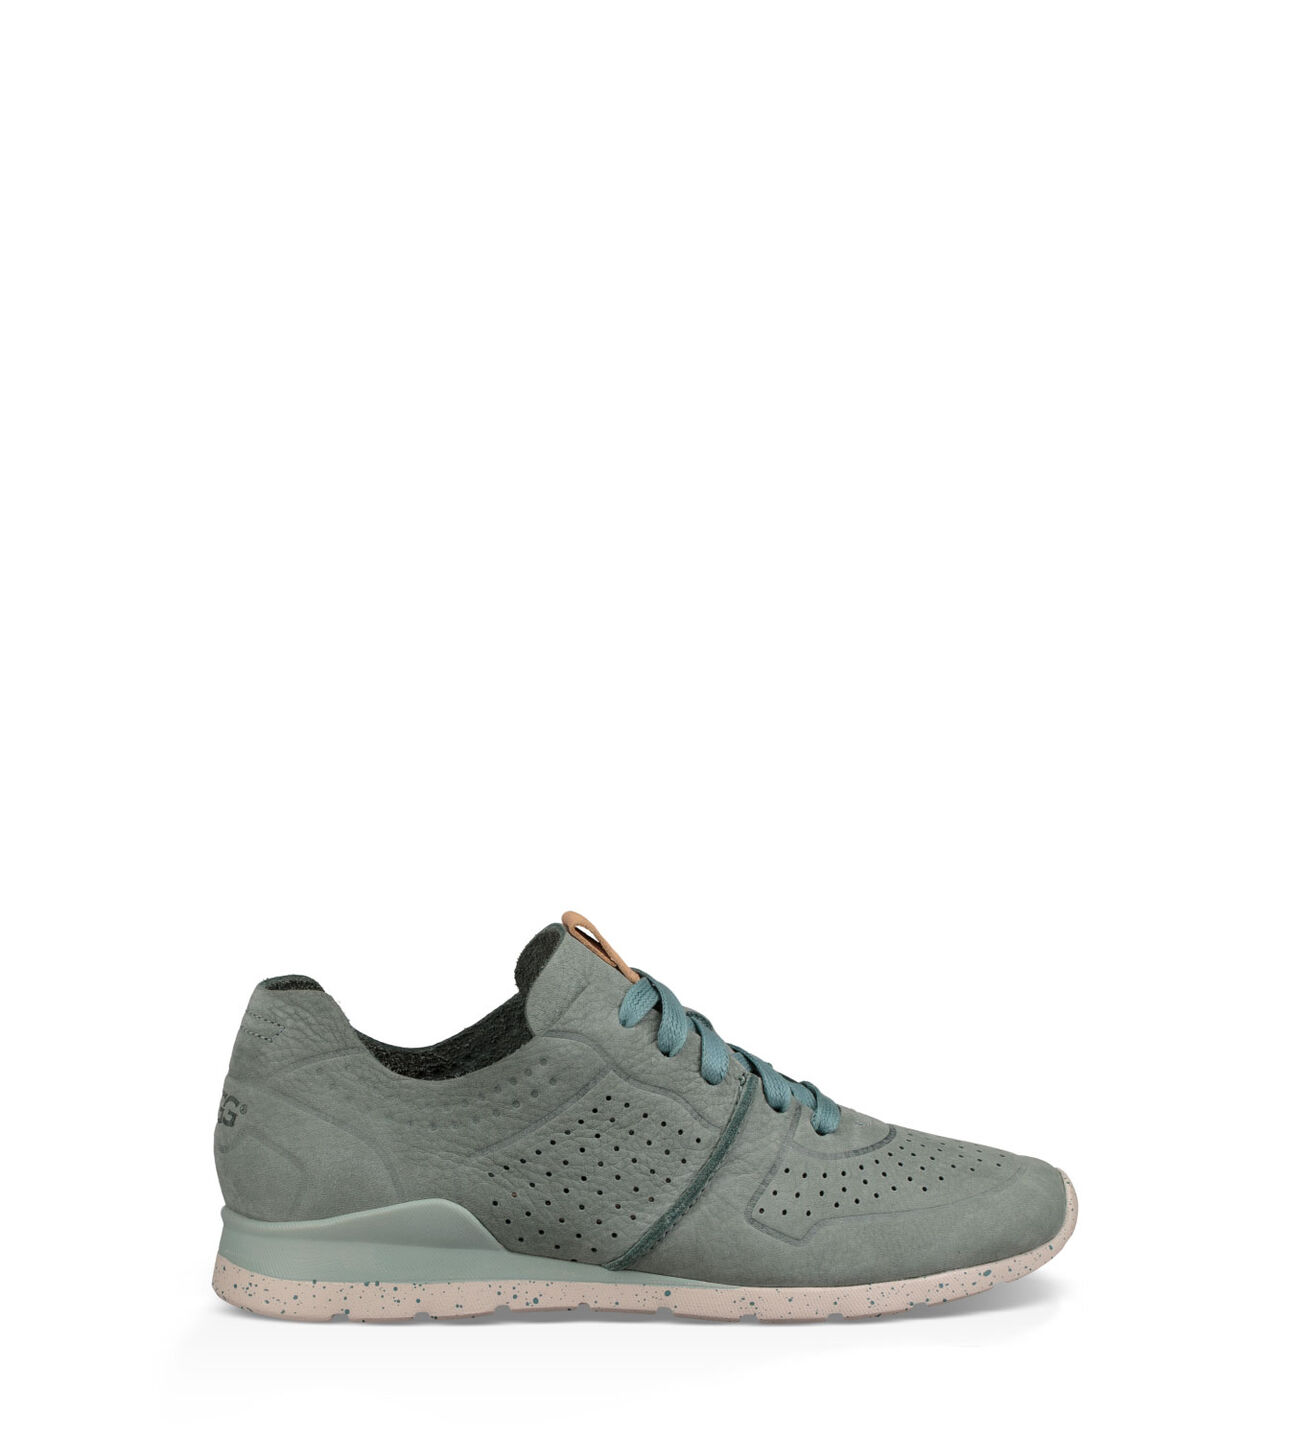 tye women Shop for ugg® tye (women's) and our wide selection of other sneakers at masseys.